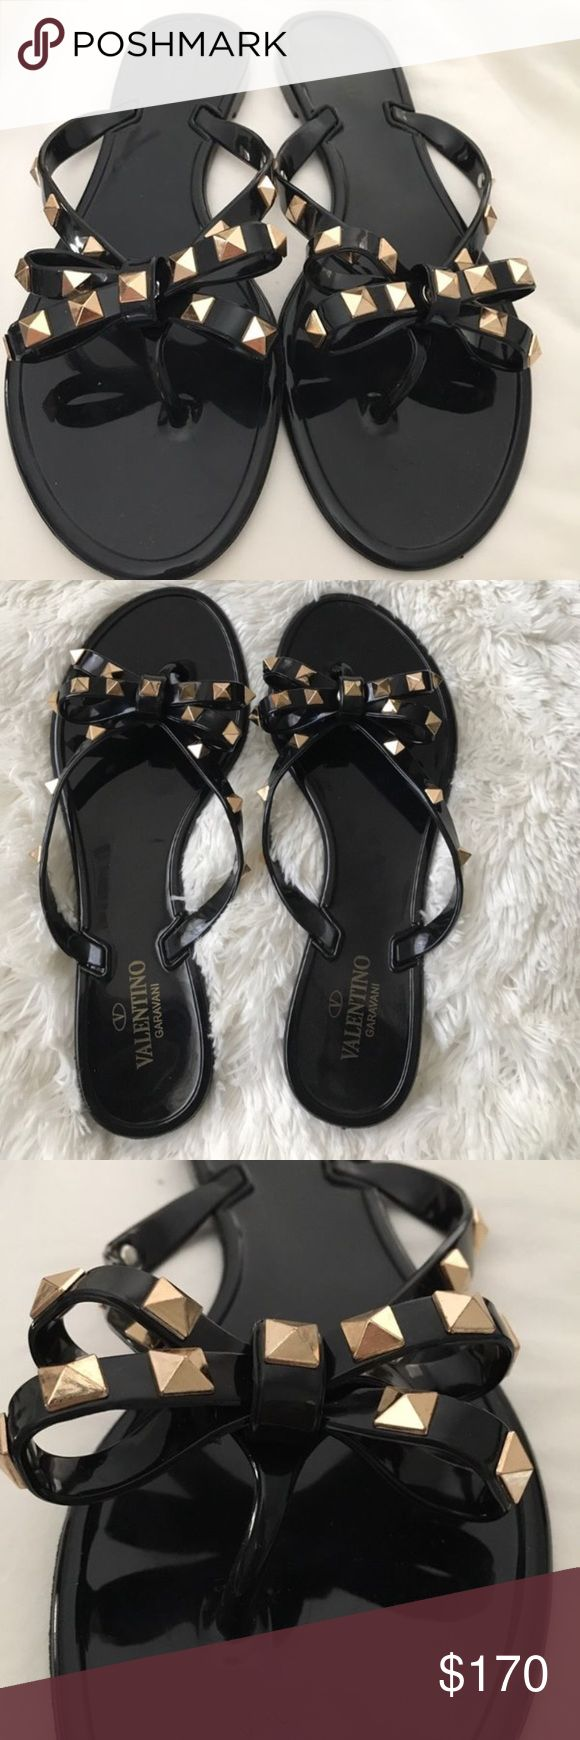 VALENTINO 'Rockstud' Flip Flops Valentino Garavani PVC Rockstud rubber flip flops in black. - Bow detail with warm color palladium-finish studs  - Sole with lace motif  DETAILS Round toeline Contrasting applications  These are a size 39 (but run small as most Valentinos do) They are more suited for a size 7. They are gorgeous and elegant, yet casual & fun. I didn't originally purchase them, so cant confirm 100% authenticity. They are more beautiful in person!!!! ((No Box, sorry.))  **ALL…